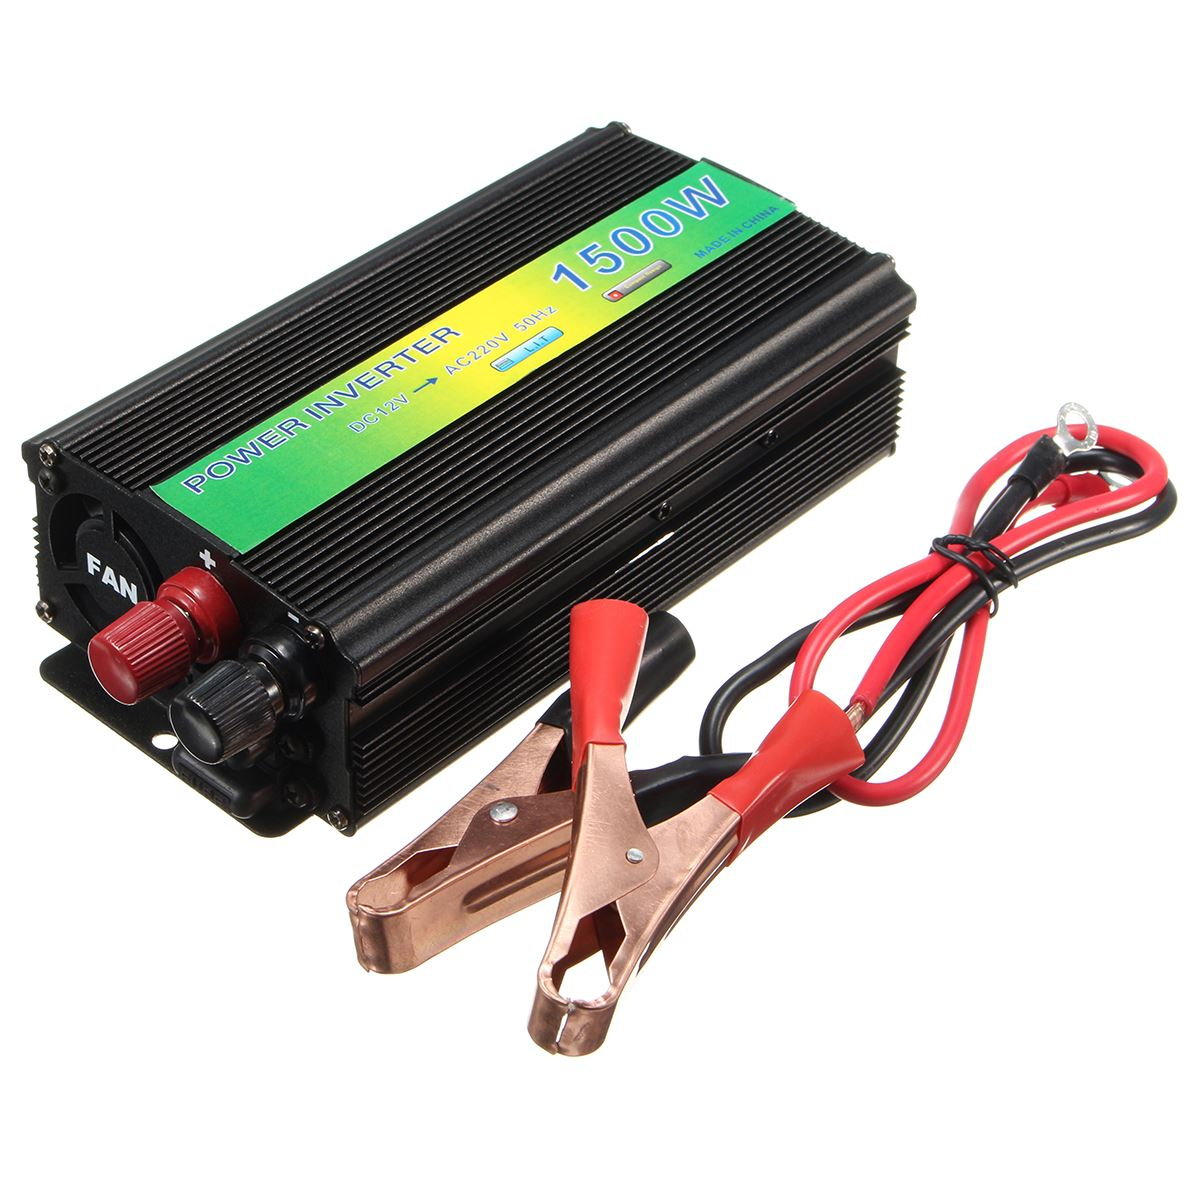 1500W Power Inverter DC 12V To AC 220V Modified Pure Sine Wave Converter USB Charger